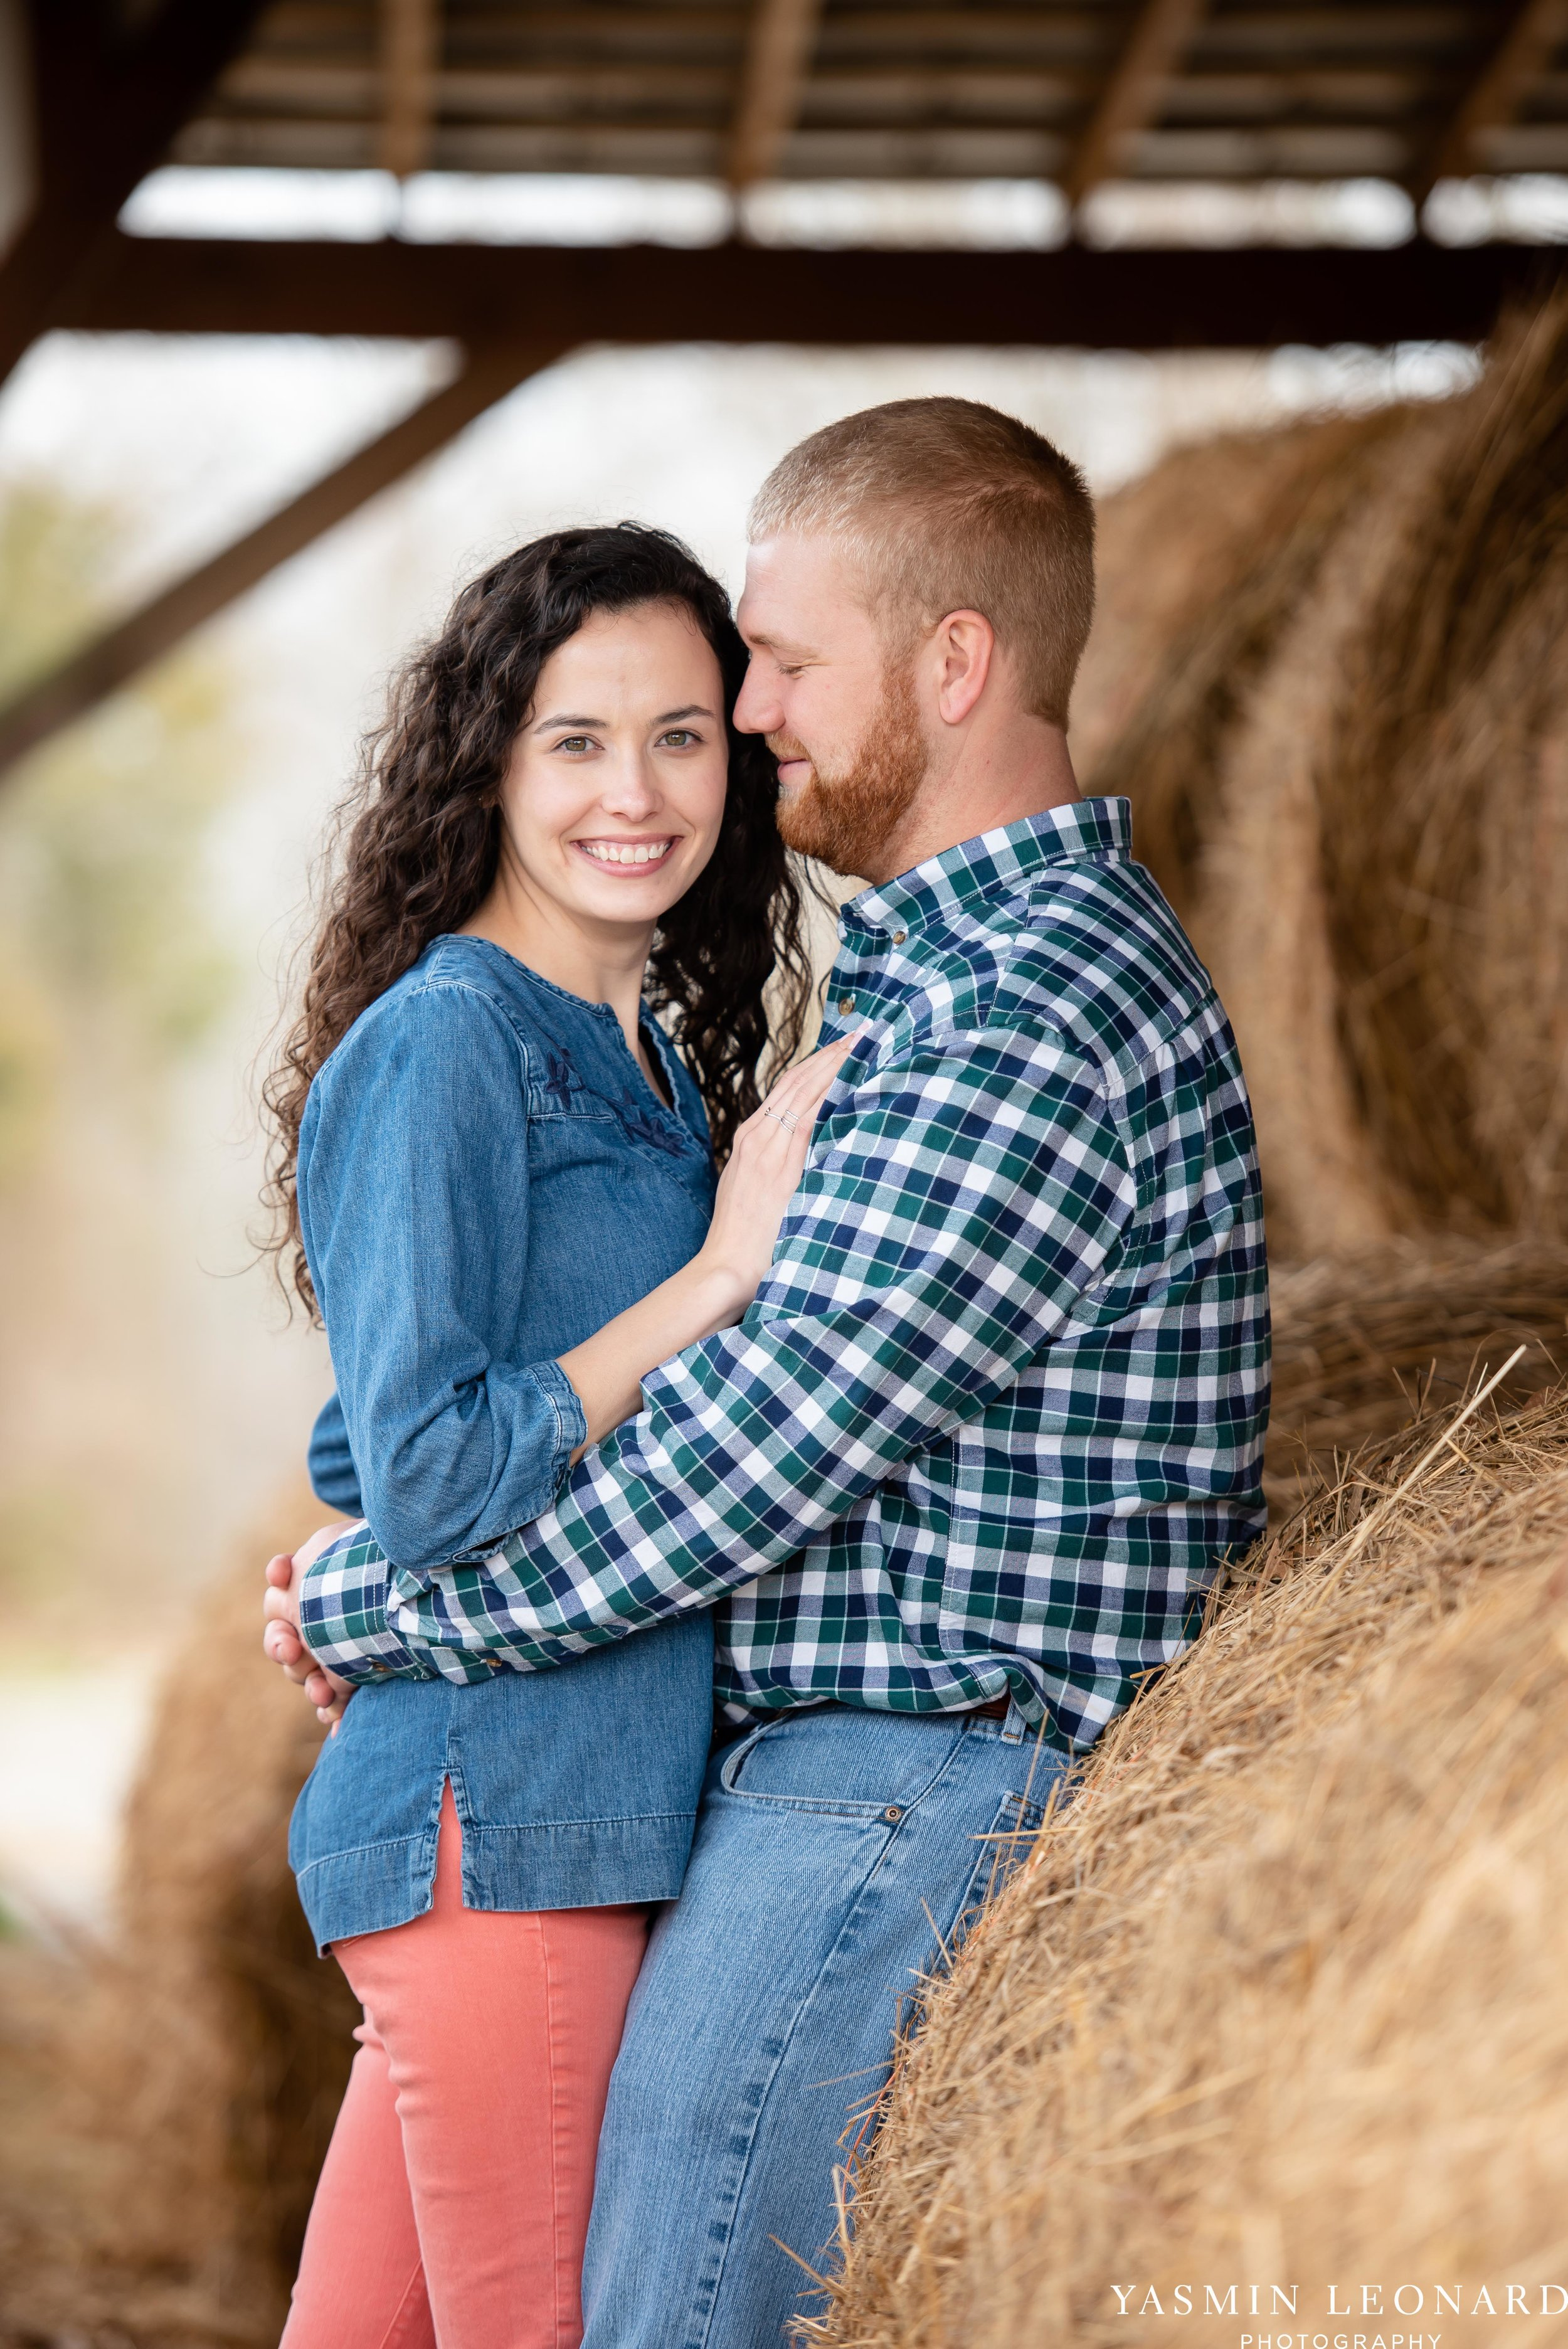 Wallburg Engagement Session - Country Engagement Session - High Point Engagement Session - Outdoor Engagement Session - Engagement Photos - Barn Engagement Photos - NC Photographer - High Point Photographer-10.jpg